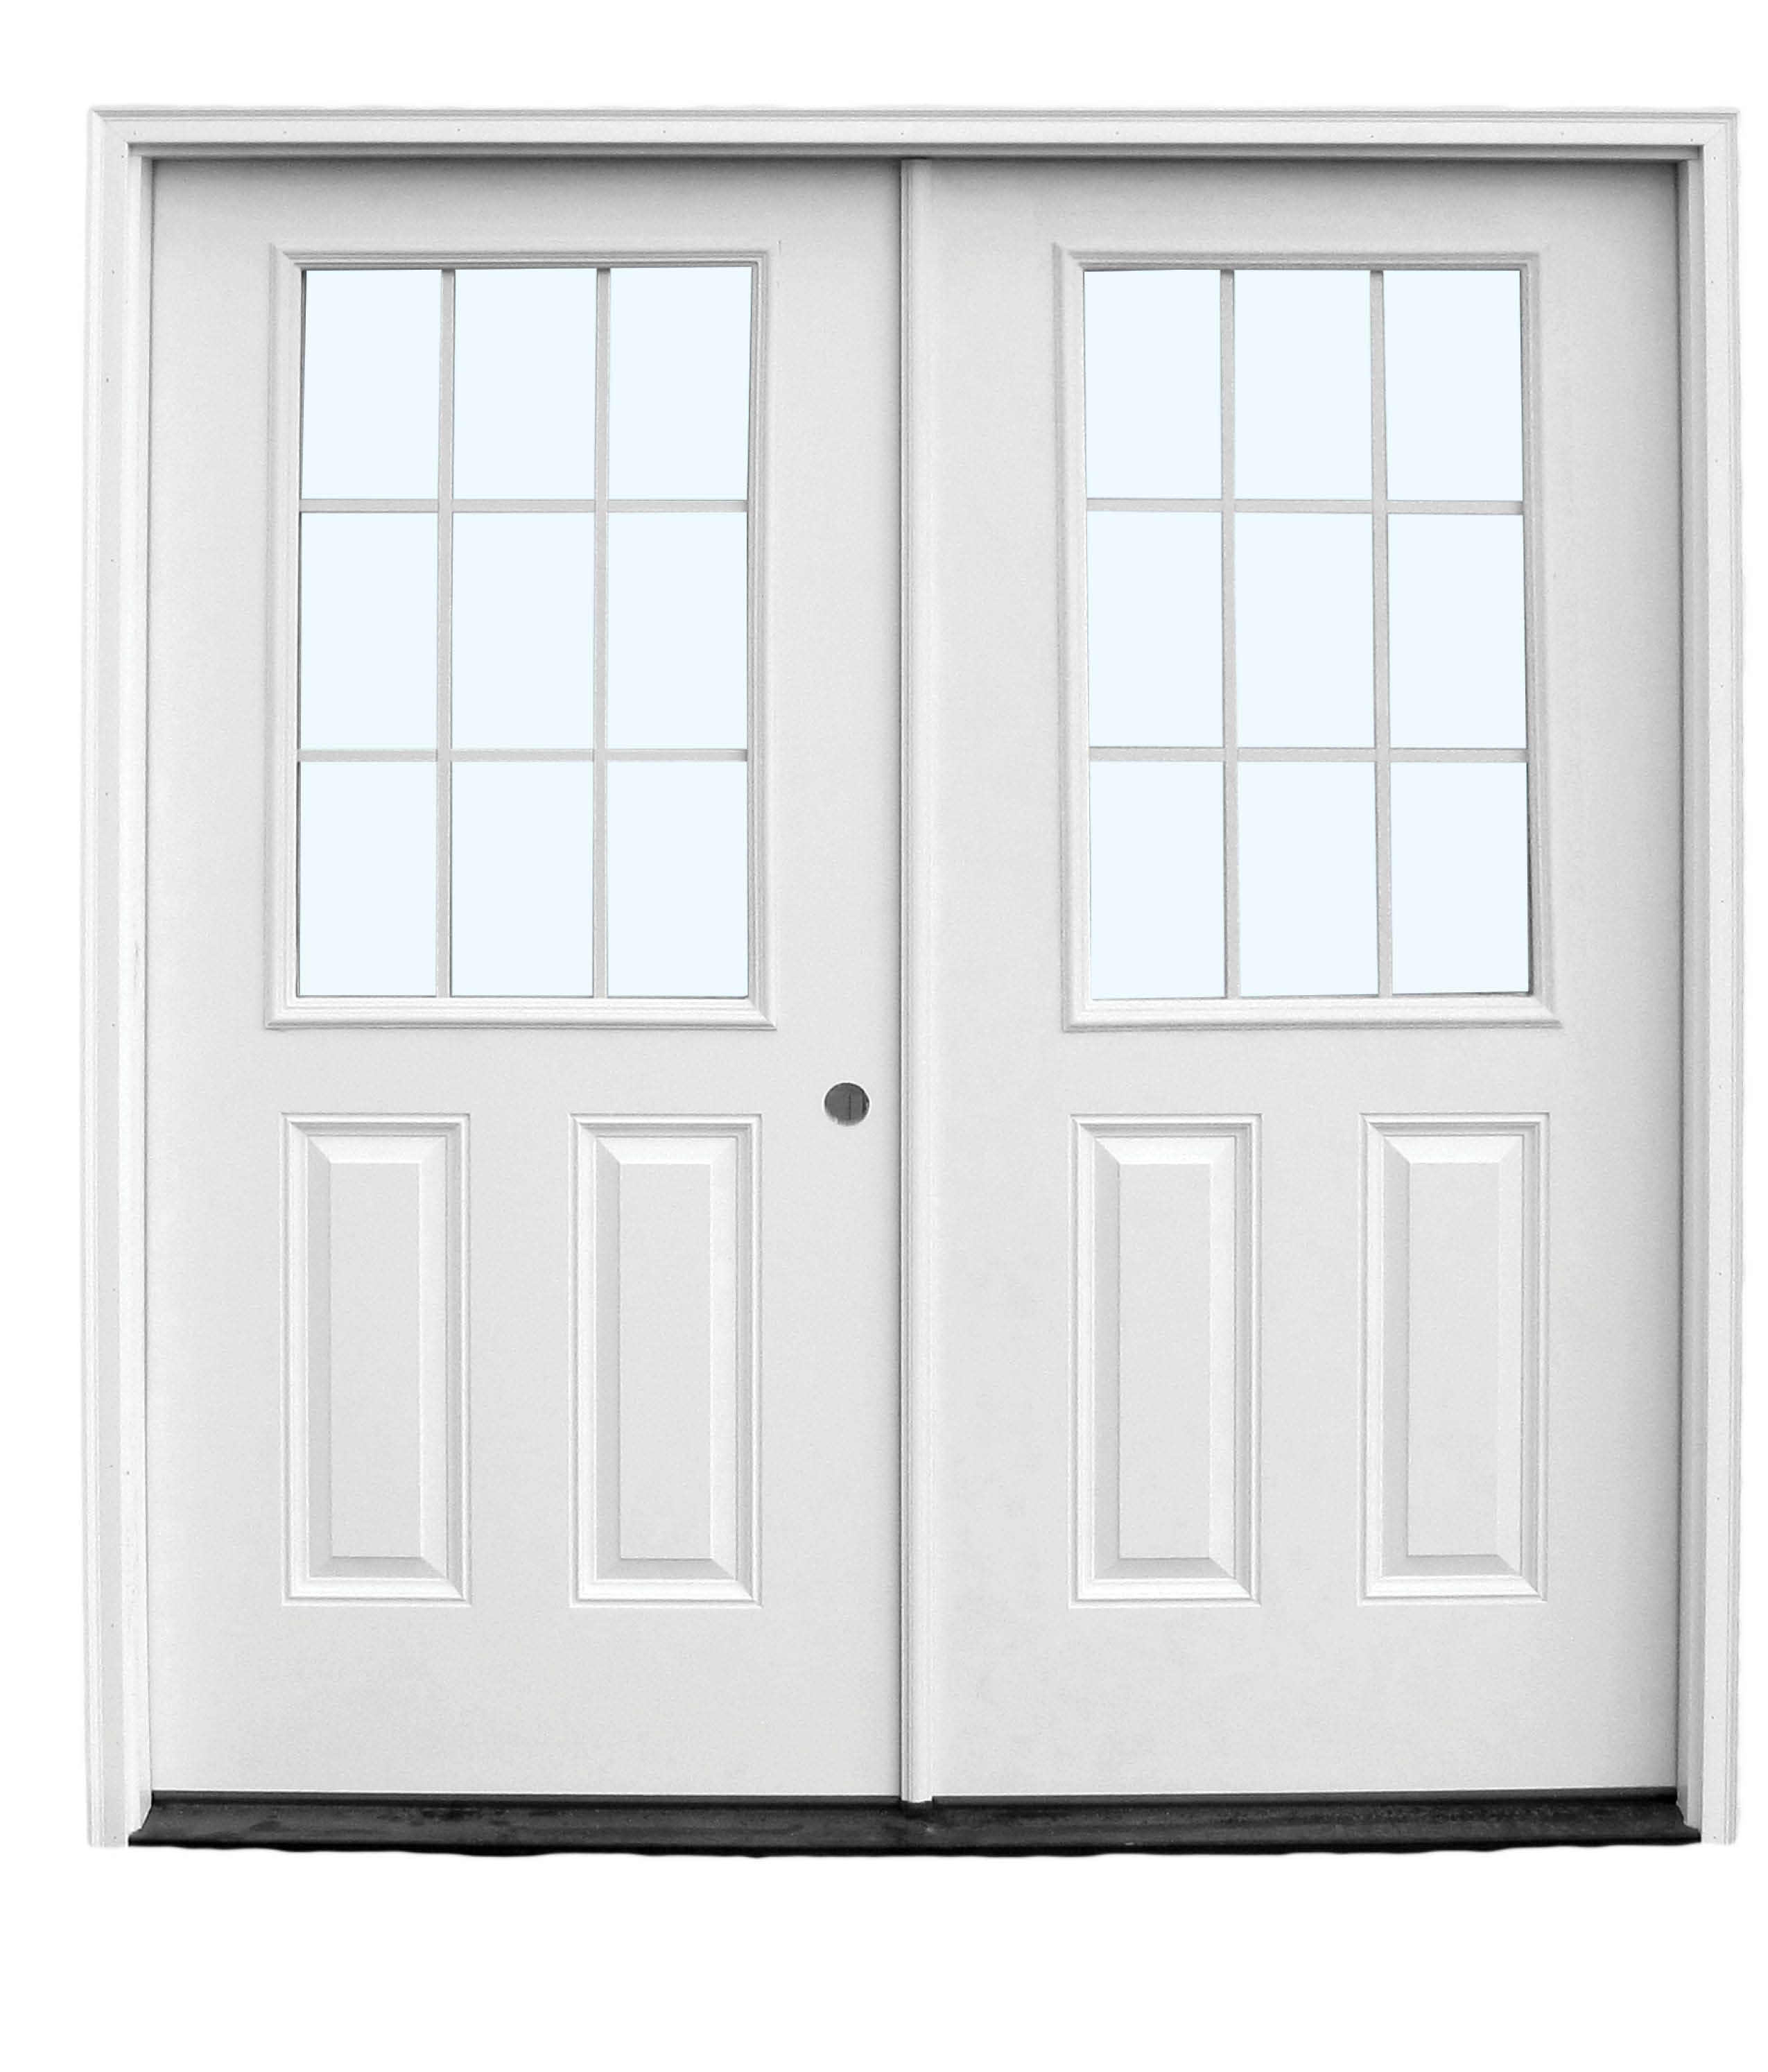 Fiberglass Entry Doors Ab Martin Building Supplies